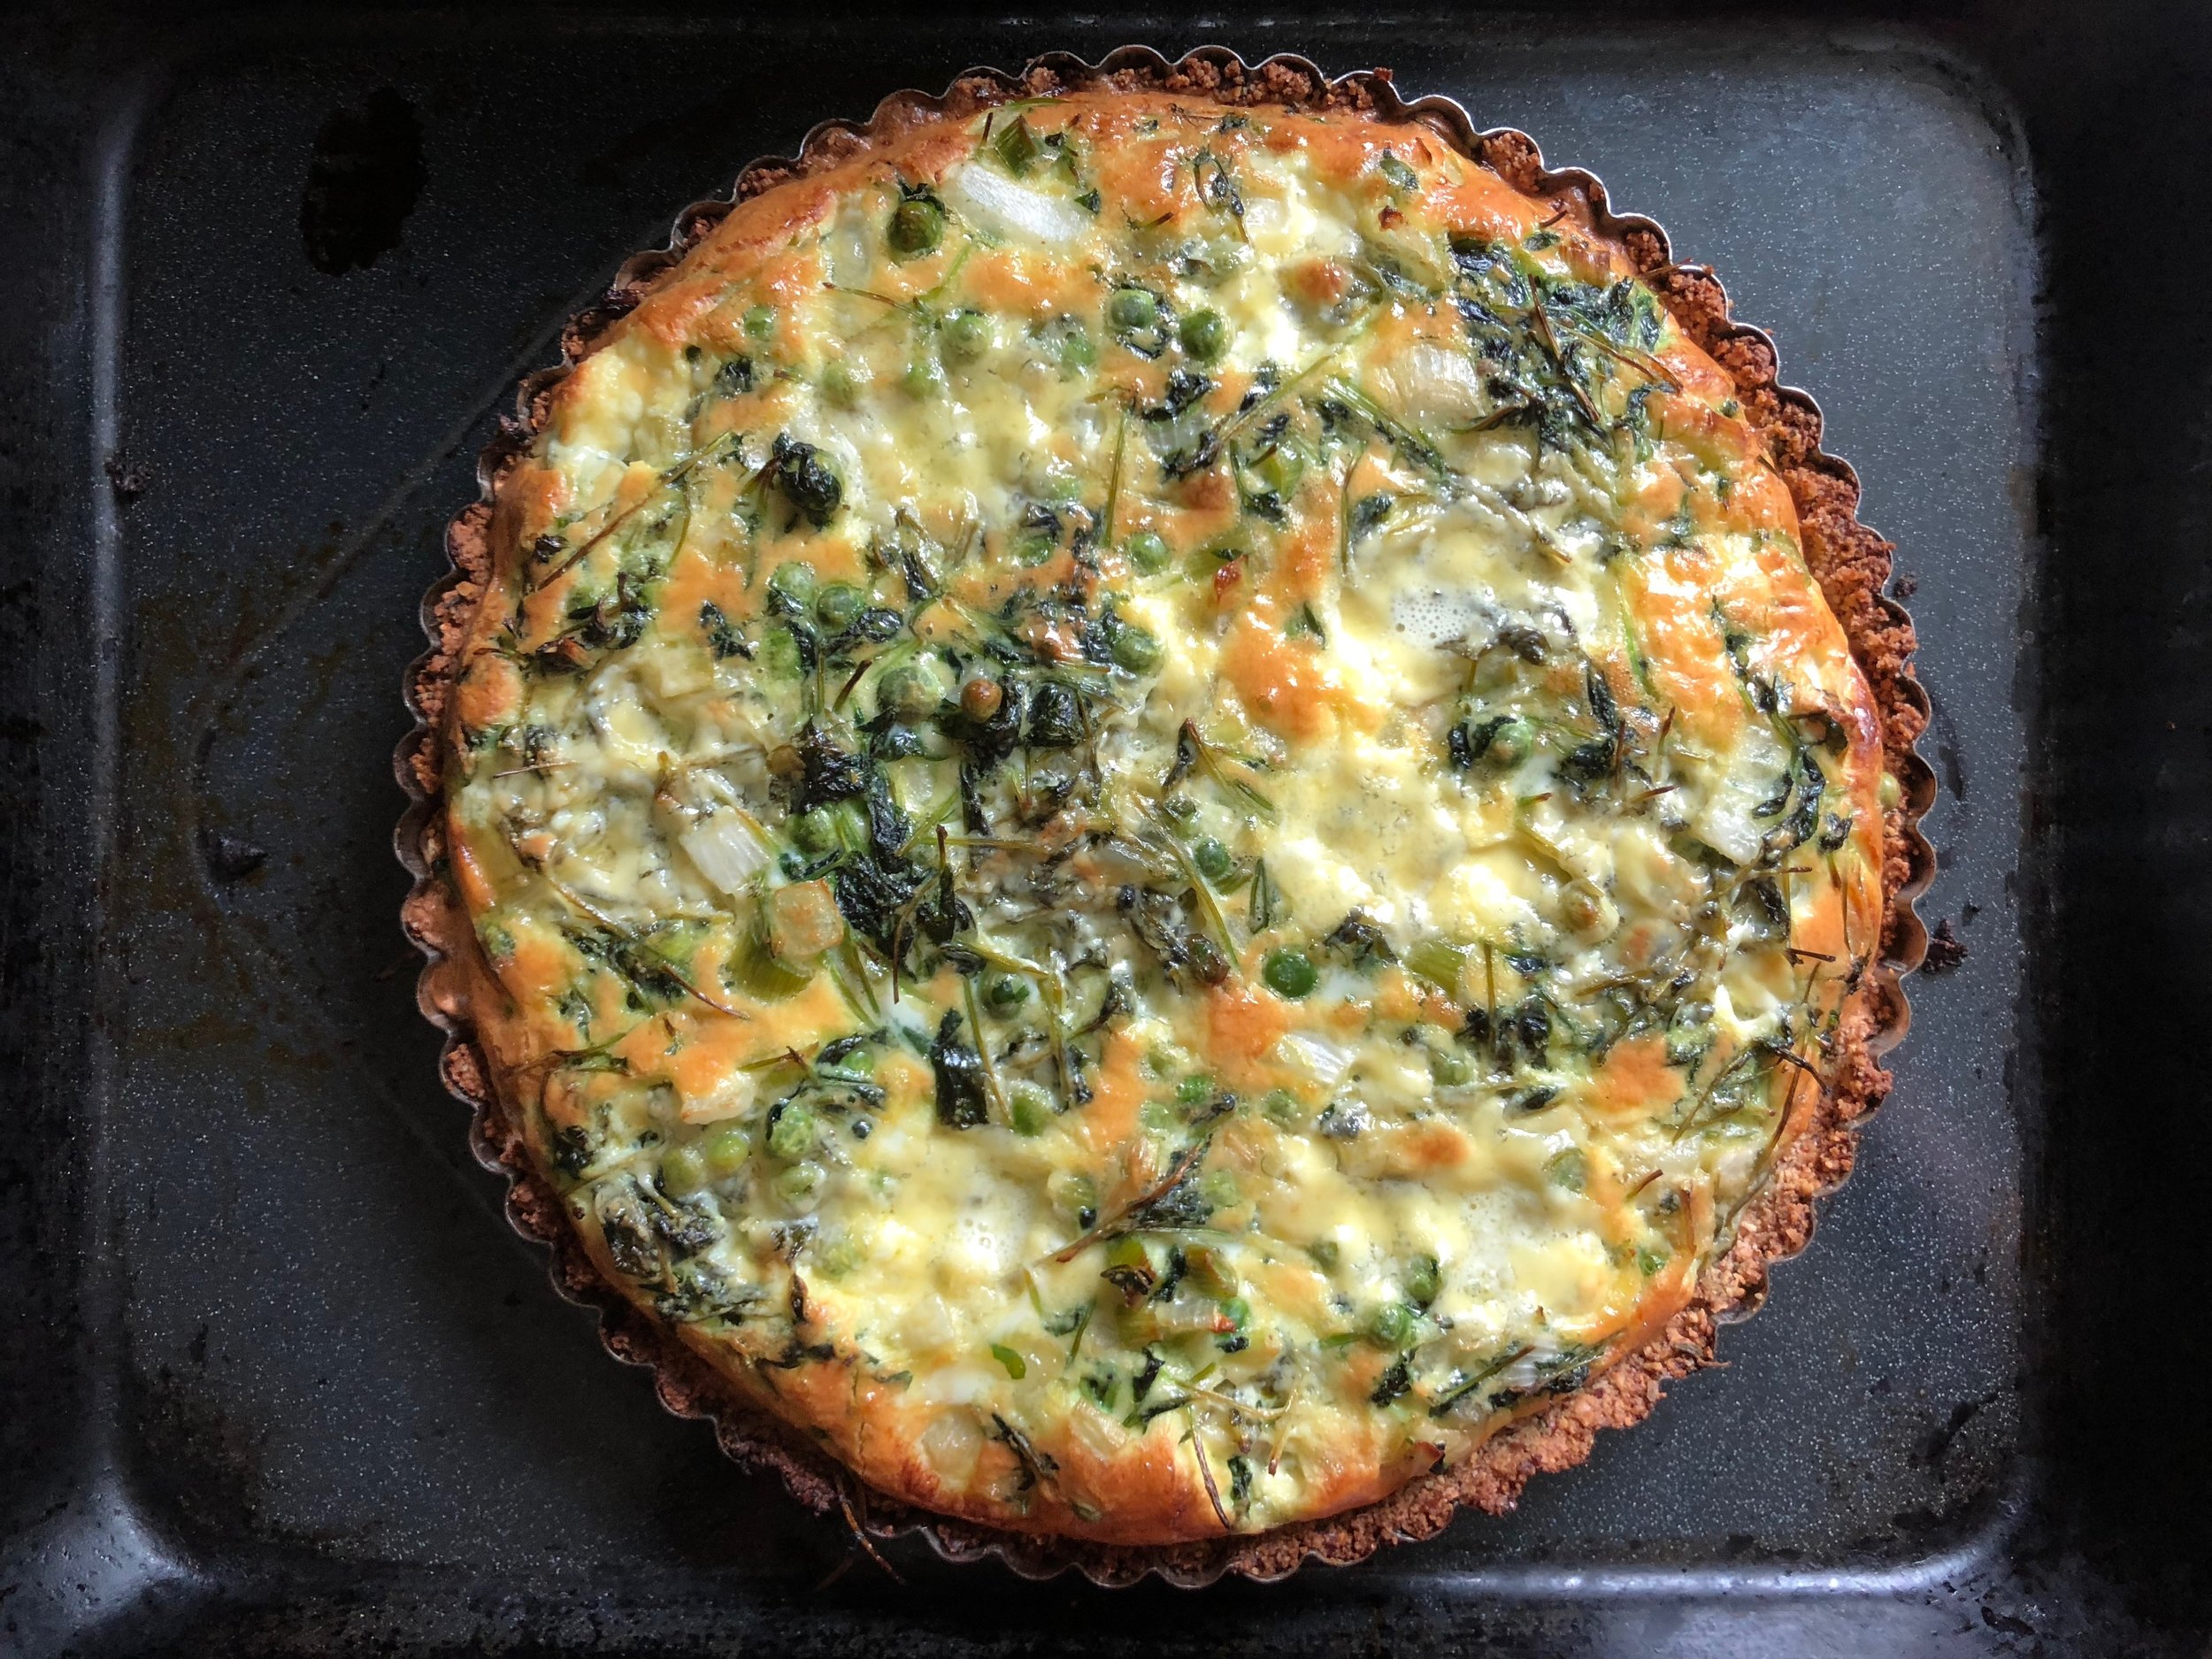 pea quiche cooked.jpg